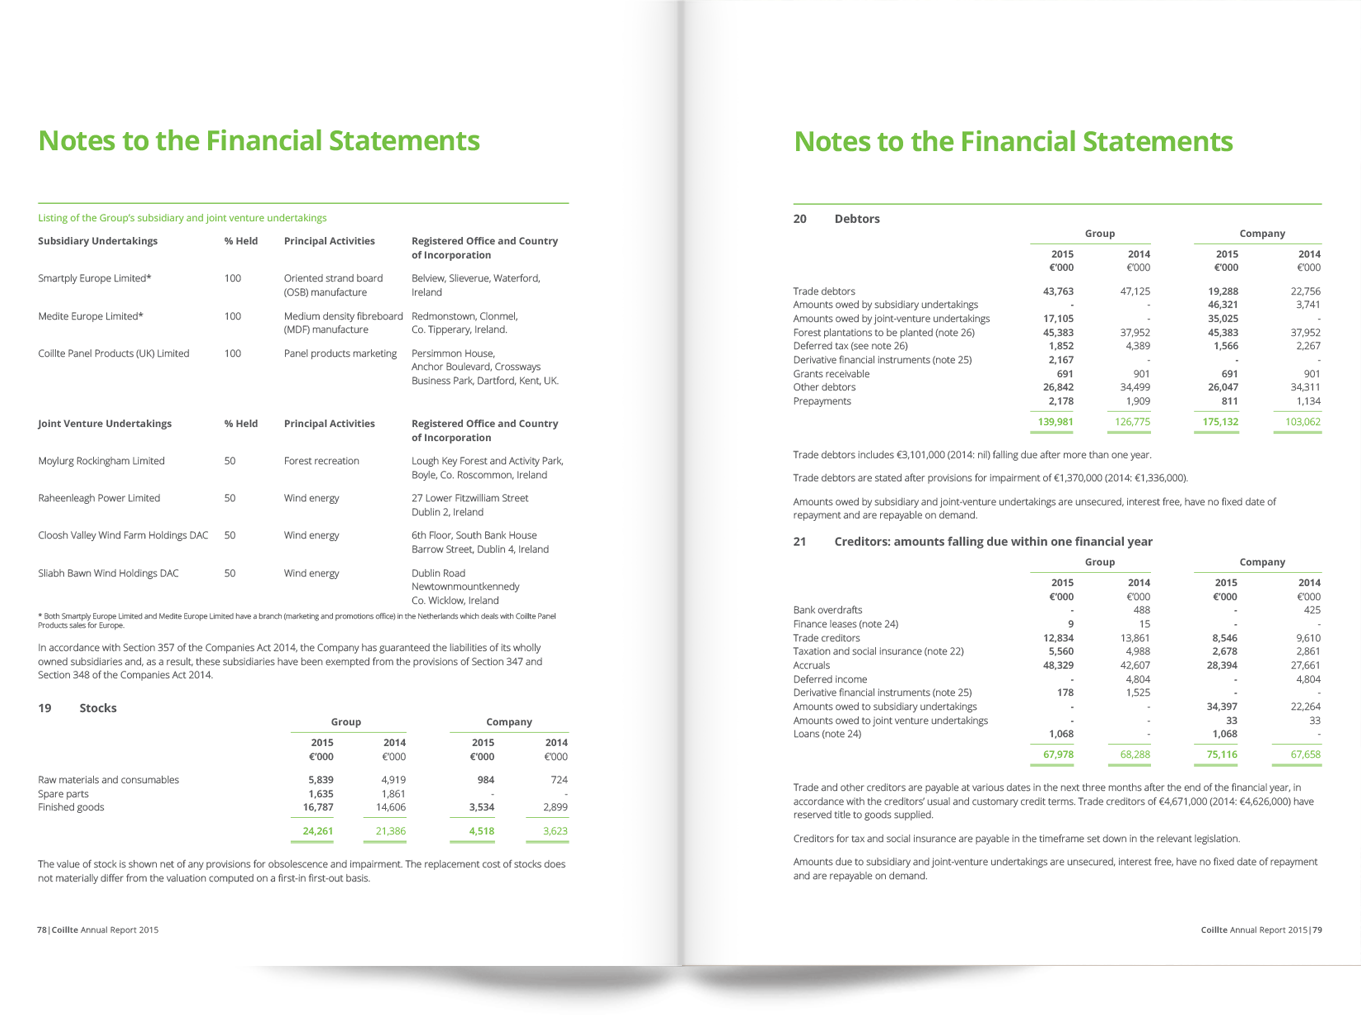 d_coillte_annual_report_spread_accounts